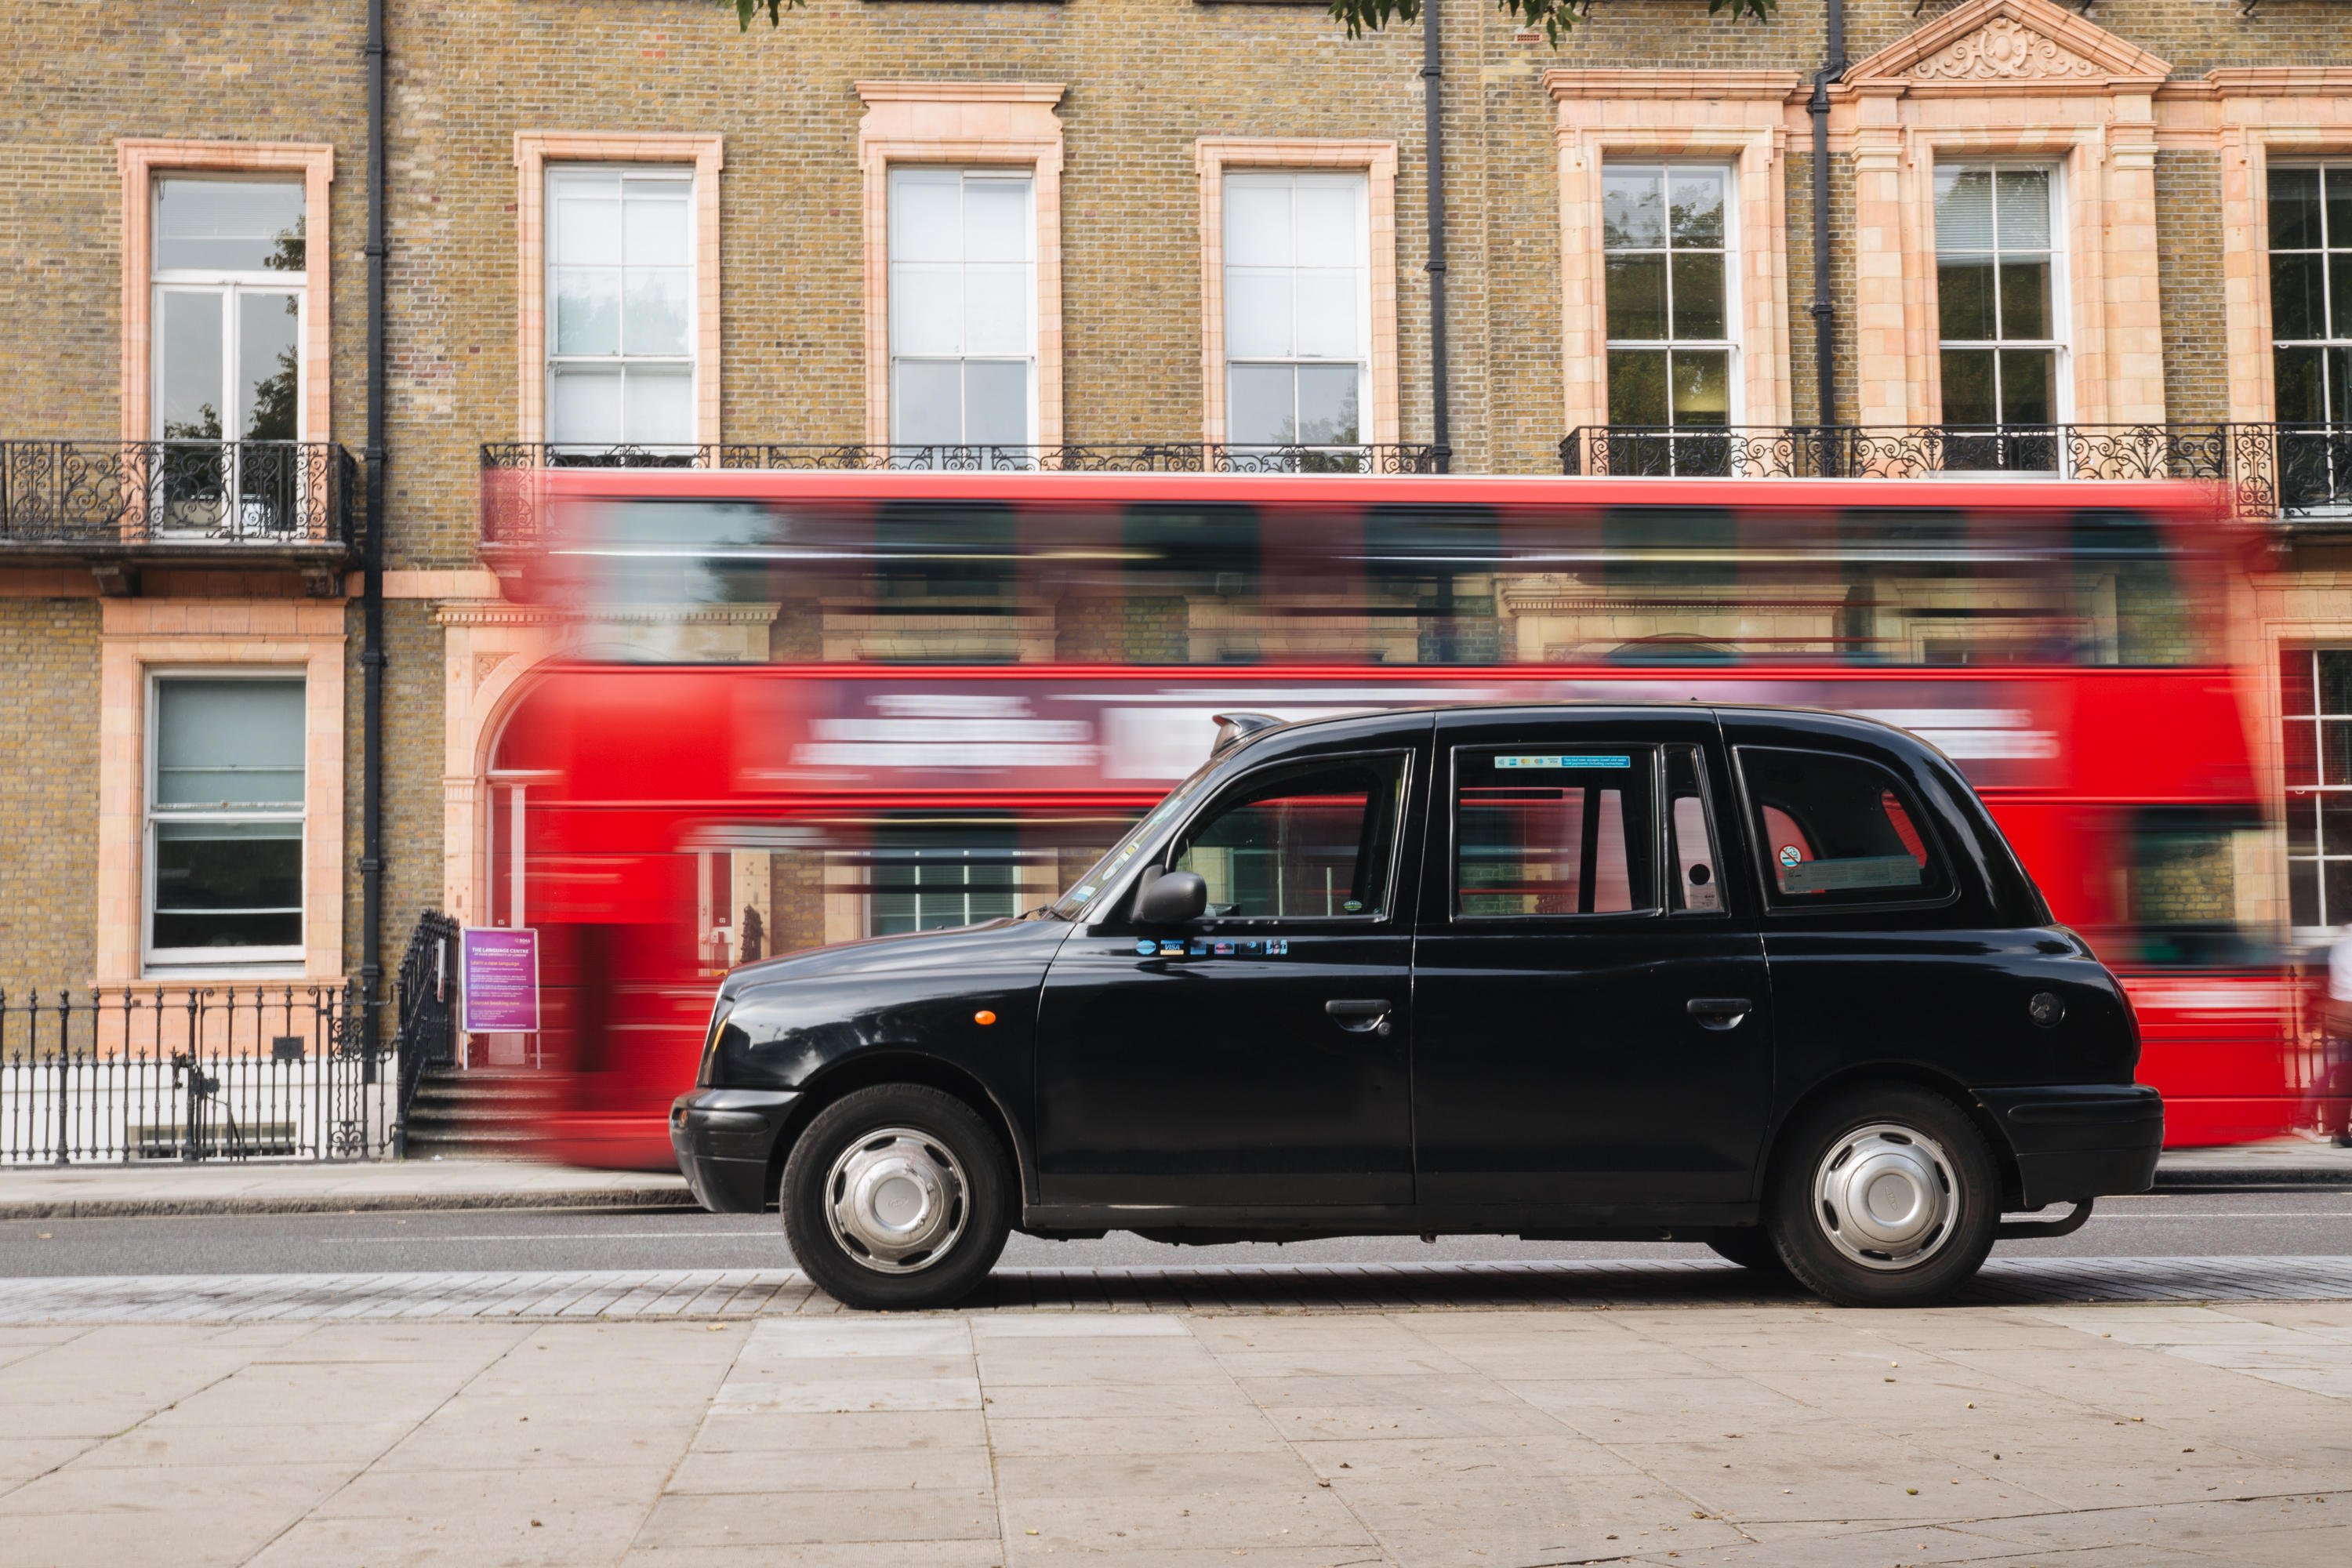 A classic London black cab sits in a parking bay in Russell Square, Central London. A double-decker bus passes behind.